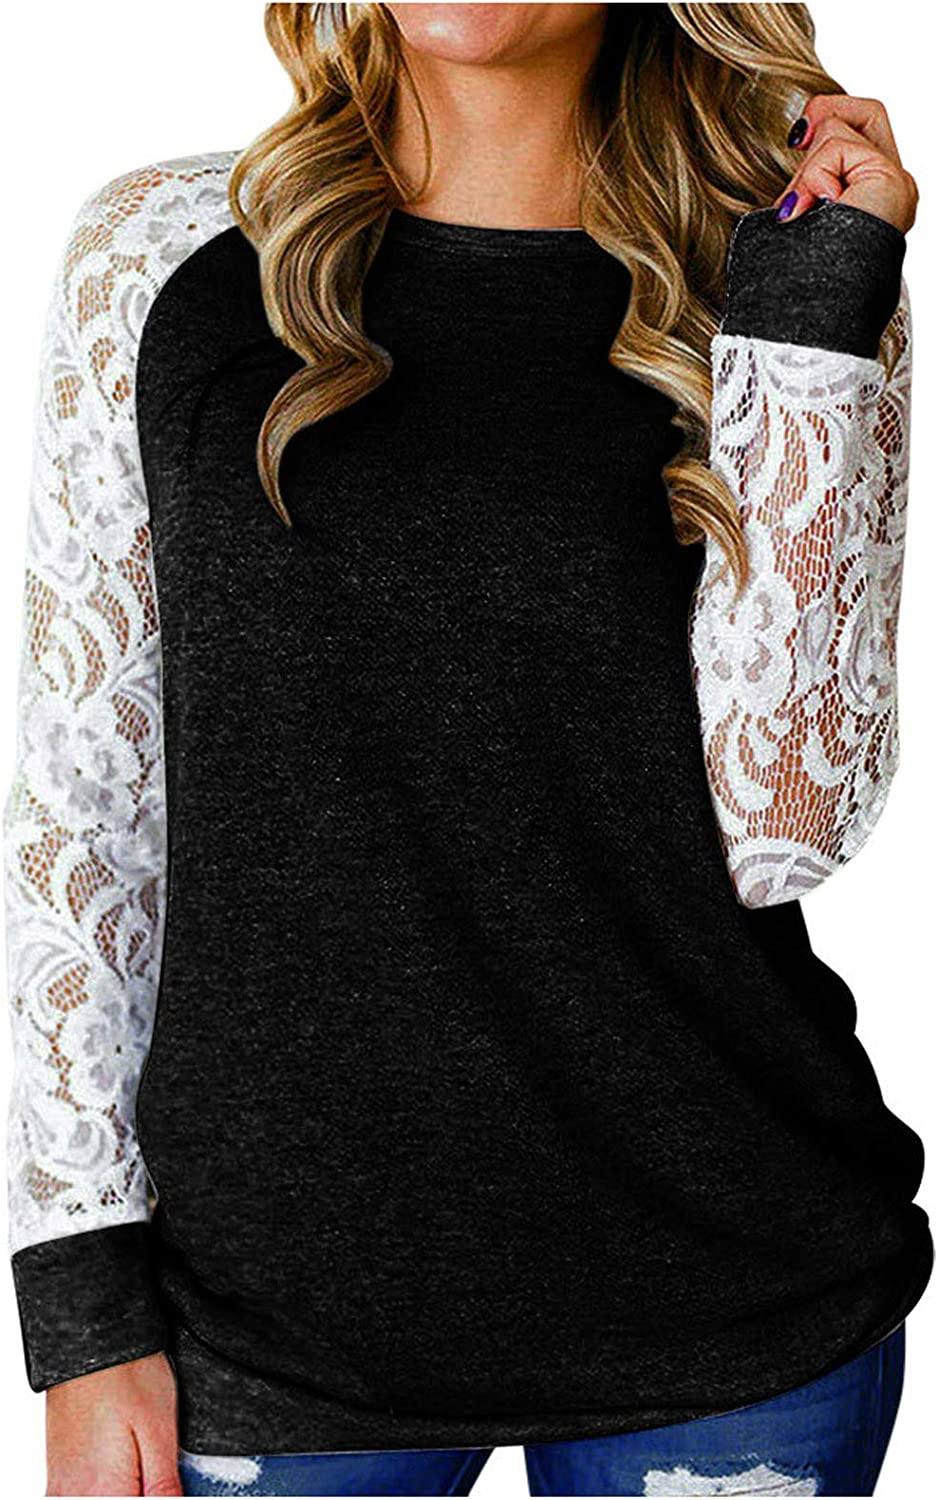 LADIES NEW womans top t shirt summer Sequin LIGHT WEIGHT SIZE 16 20 22 24 LOOK